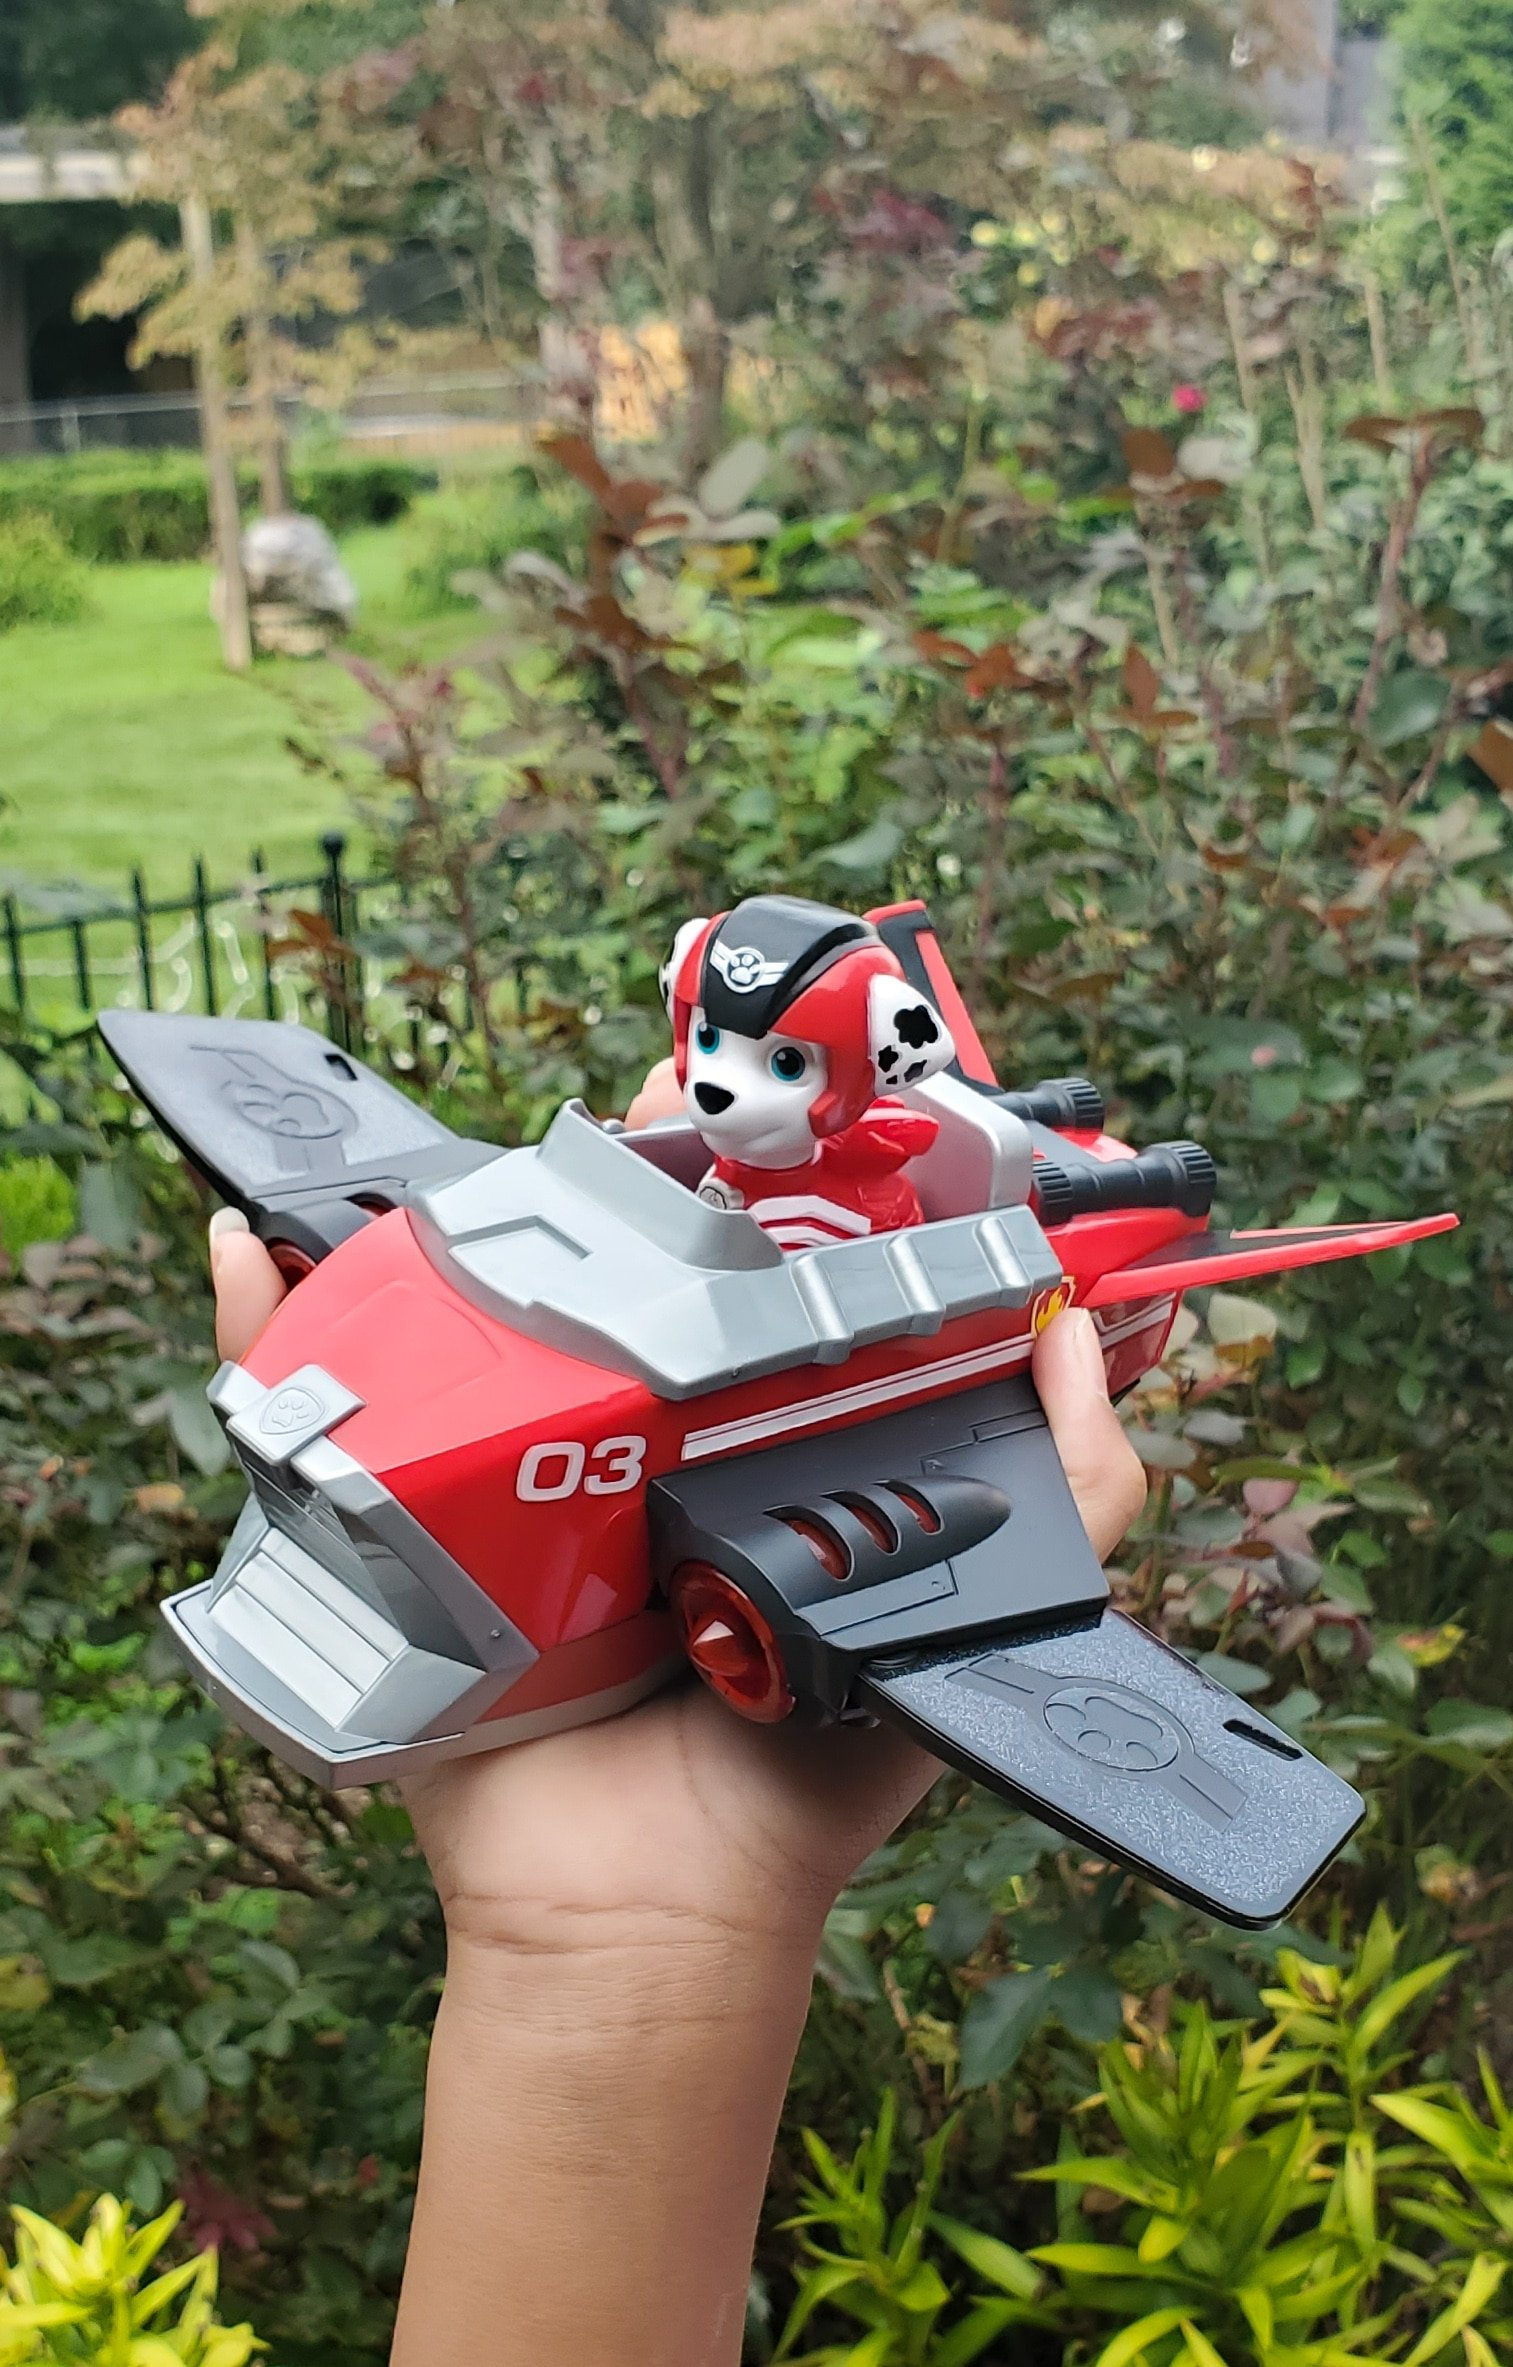 PAW Patrol: Jet to the Rescue Unboxing Marshall. Get ready for high-flying adventures with the PAW Patrol pups in the brand-new DVD PAW Patrol: Jet to the Rescue. In celebration of the release of this special feature, Nickelodeon sent us a surprise box full of PAW Patrol goodies! View all of the fun new PAW Patrol: Jet to the Rescue themed toys available on my blog.